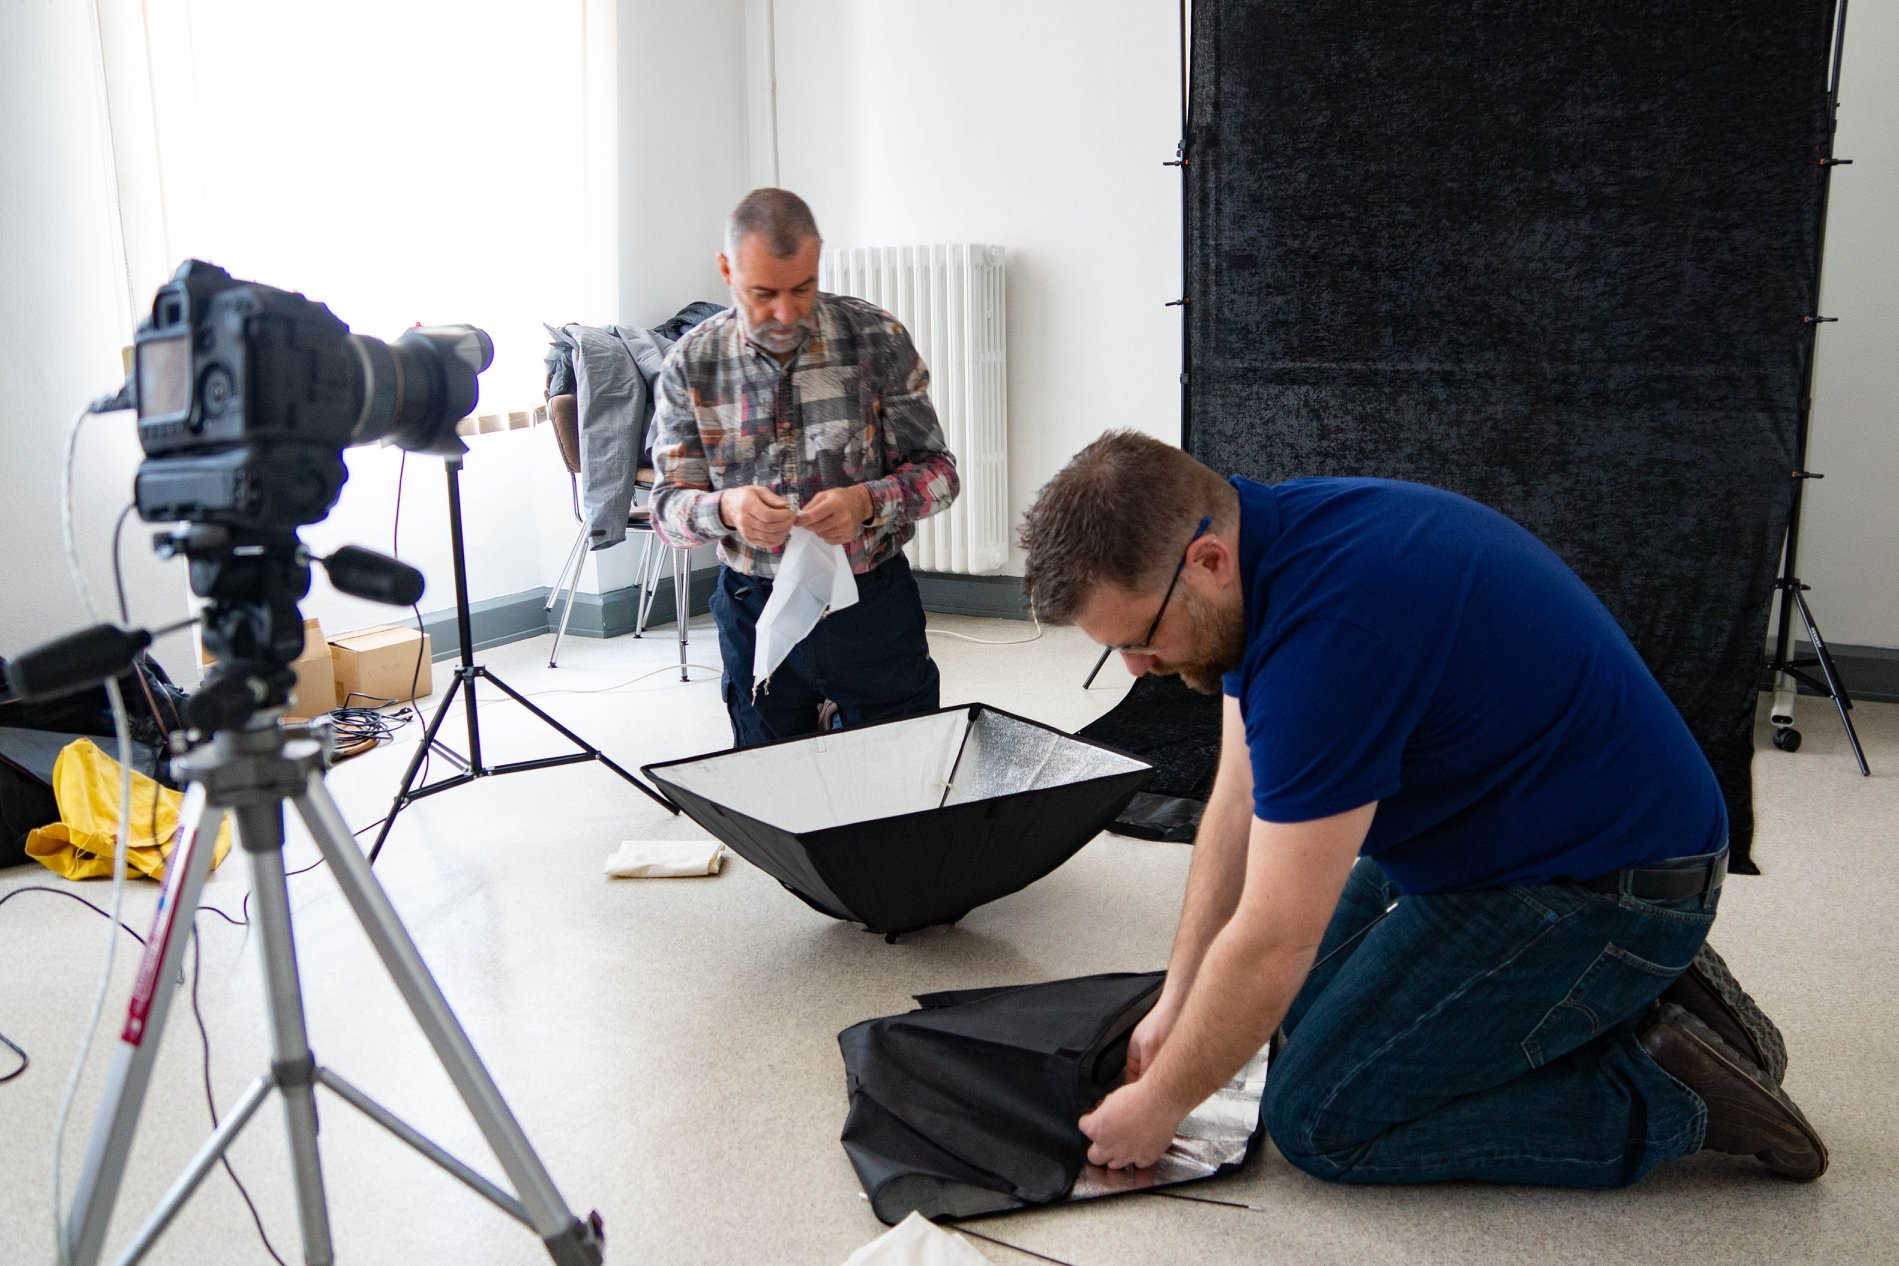 Workshop : mise en place d'un studio photo